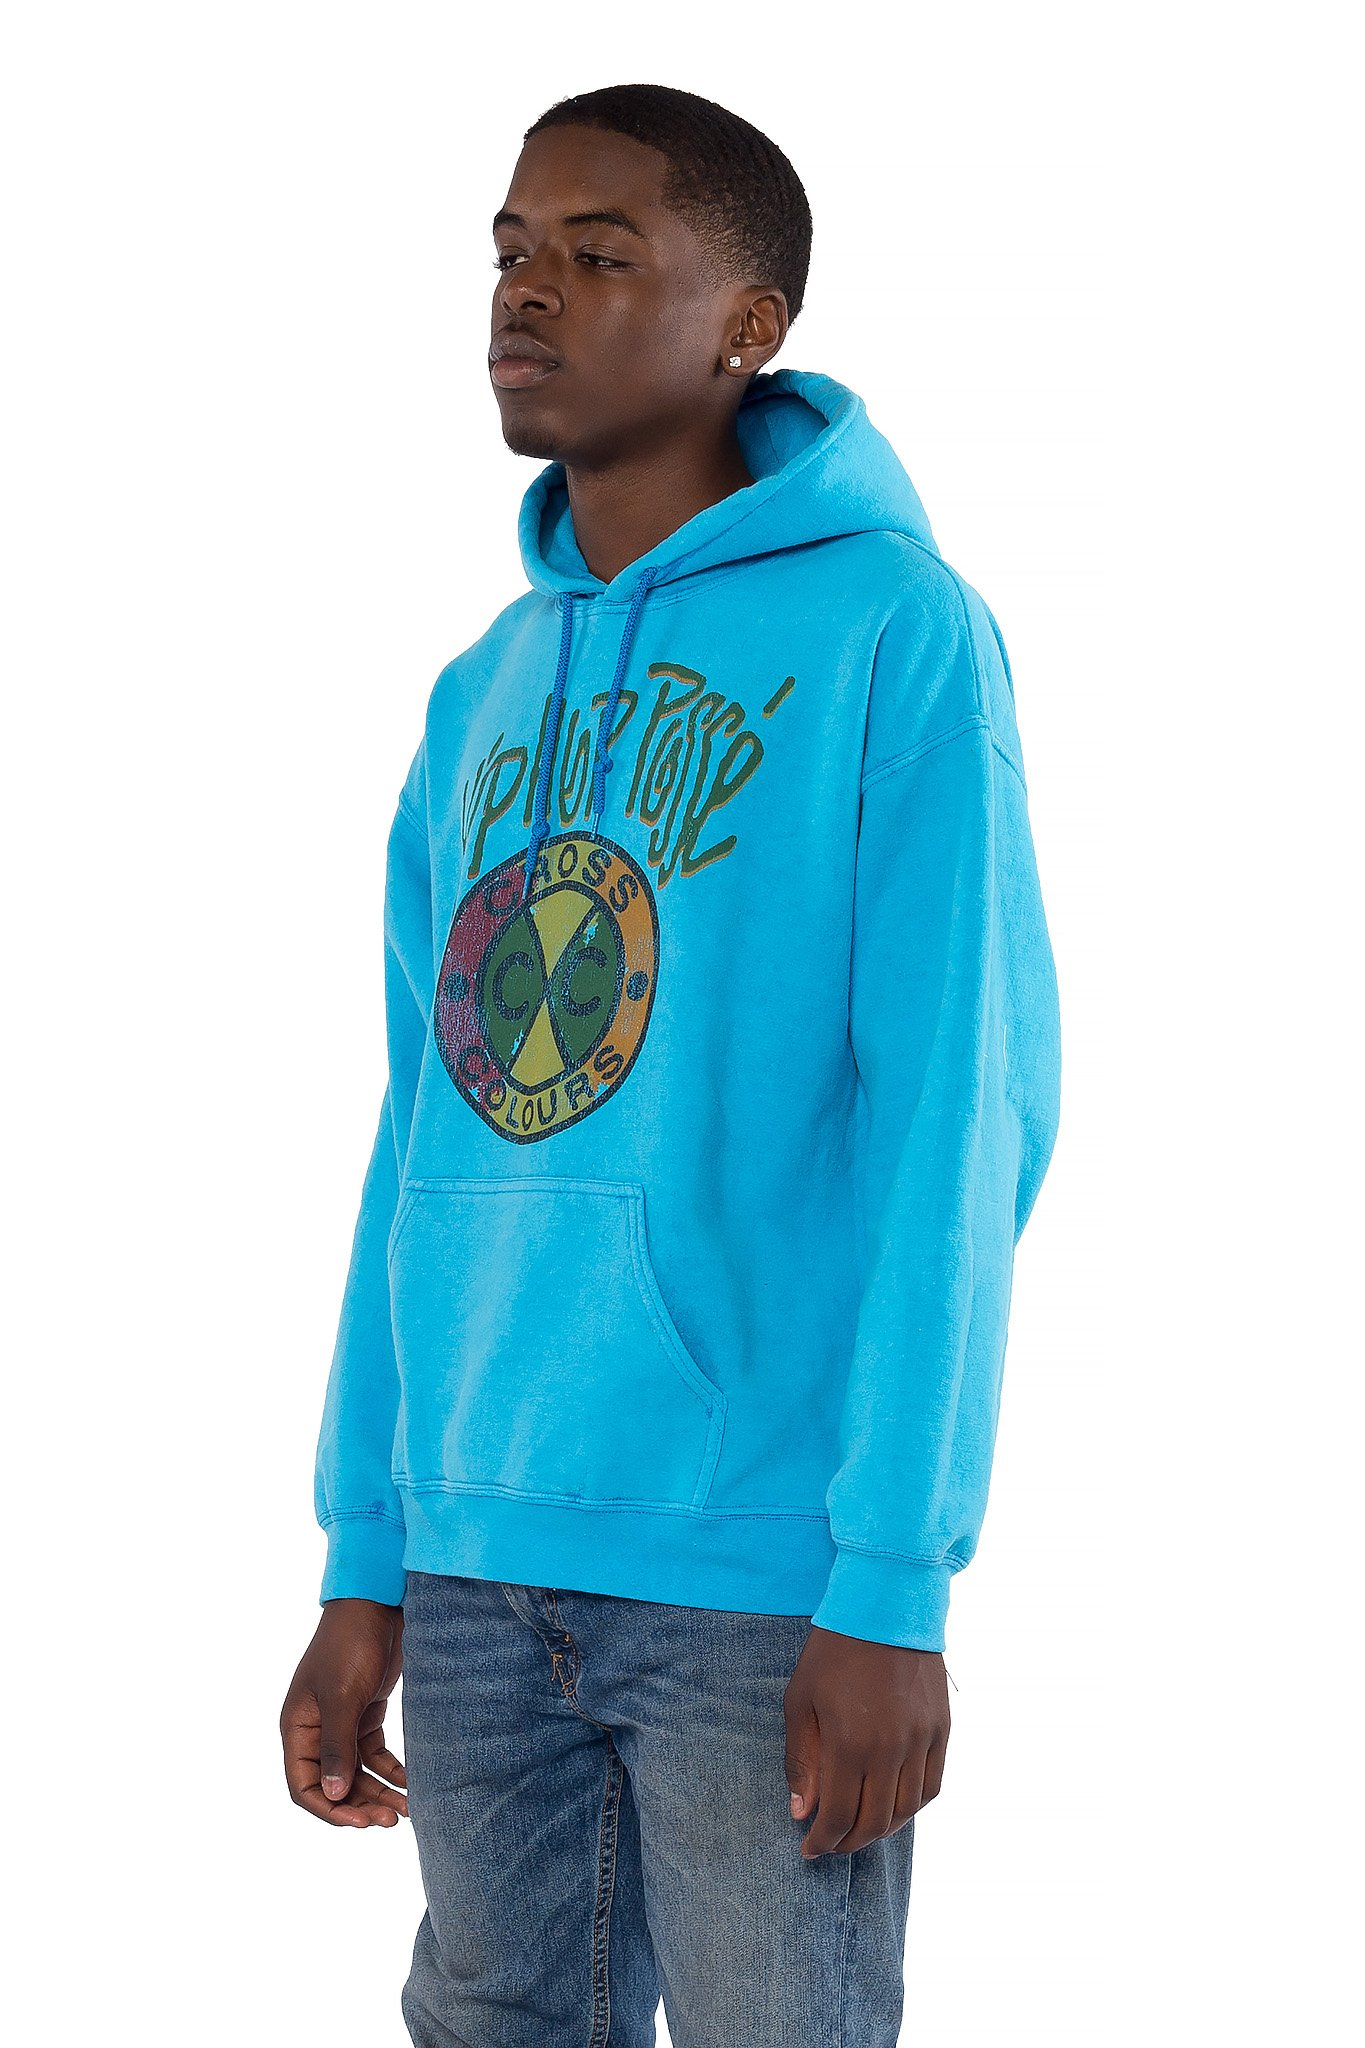 Cross_Colours_Hip_Hop_Posse_Pullover_Hoodie__Turq